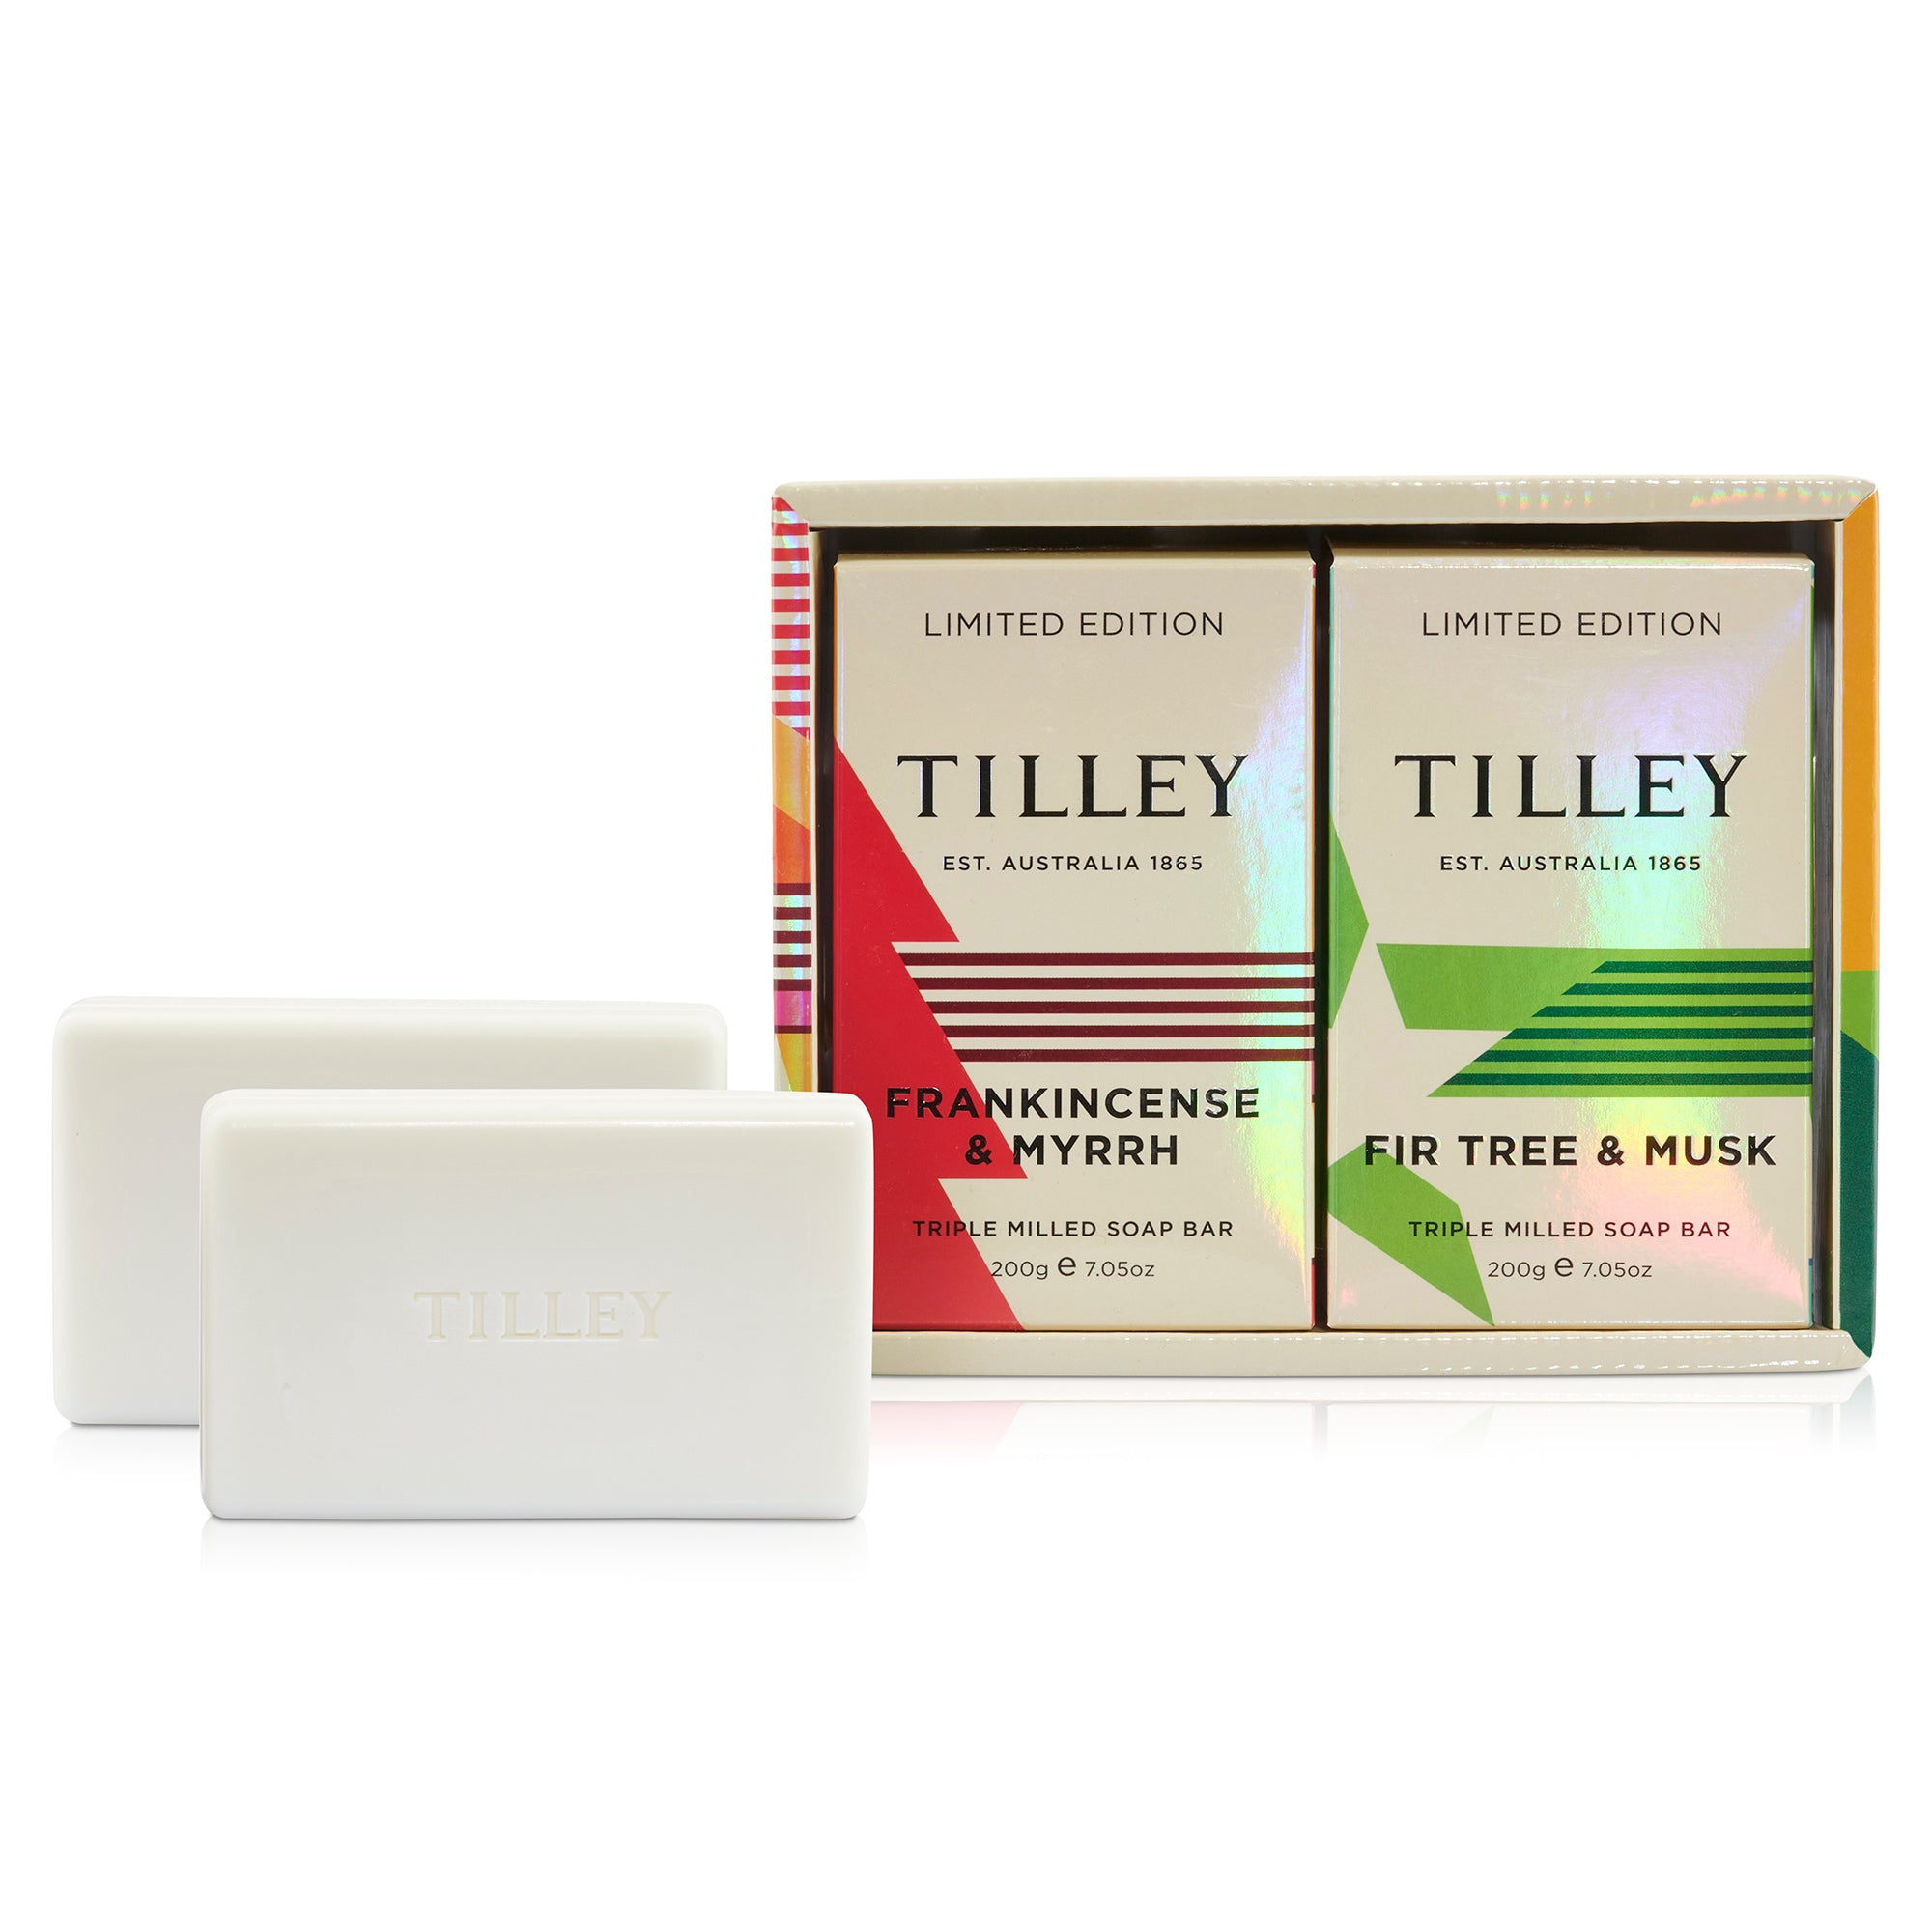 LE XMAS SOAP DUO TILLEY